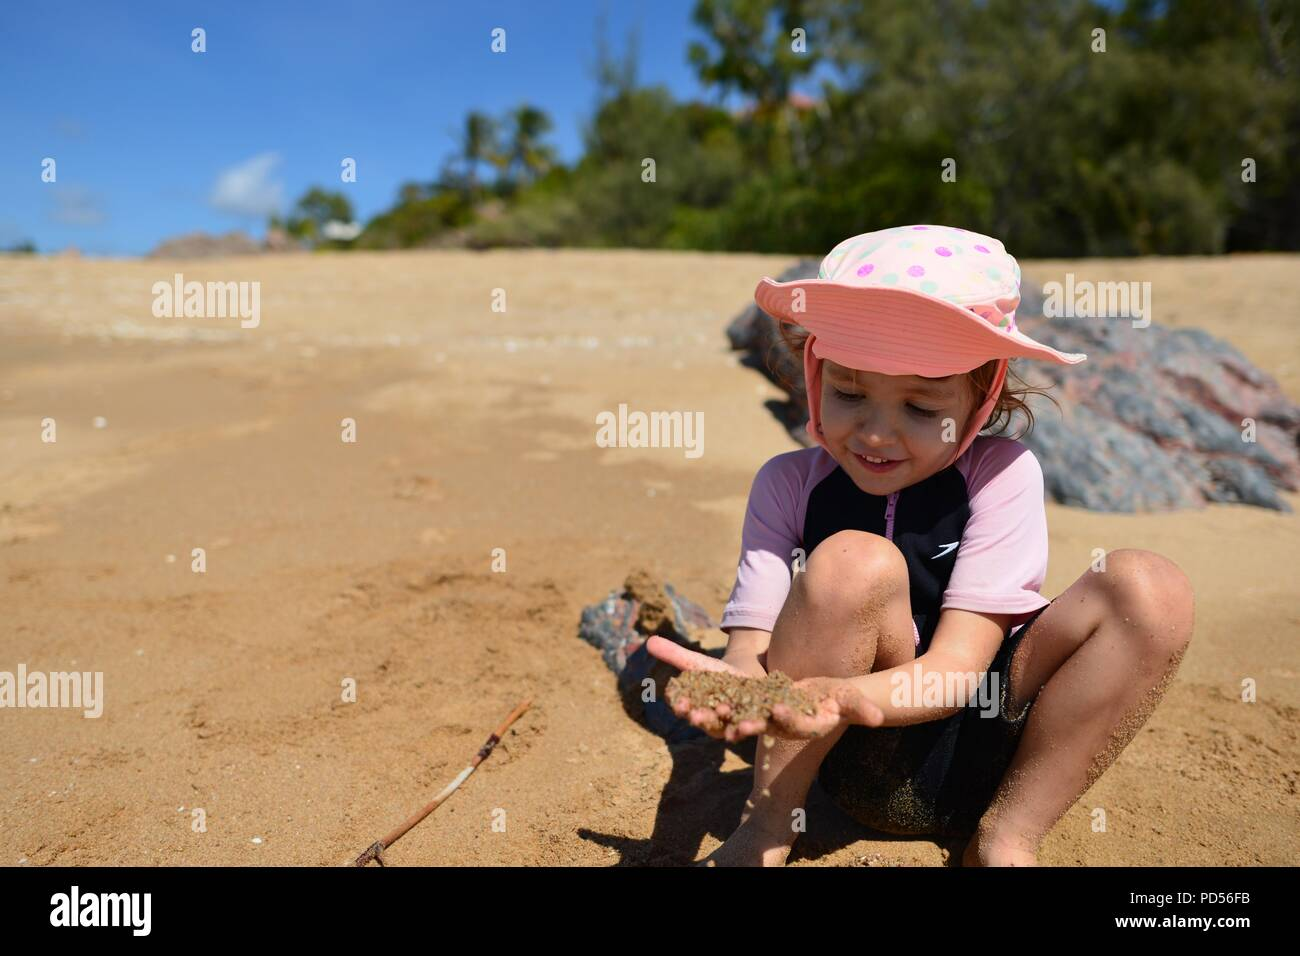 Young child playing on a beach looking at sand in her hand, Toomulla QLD, Australia - Stock Image